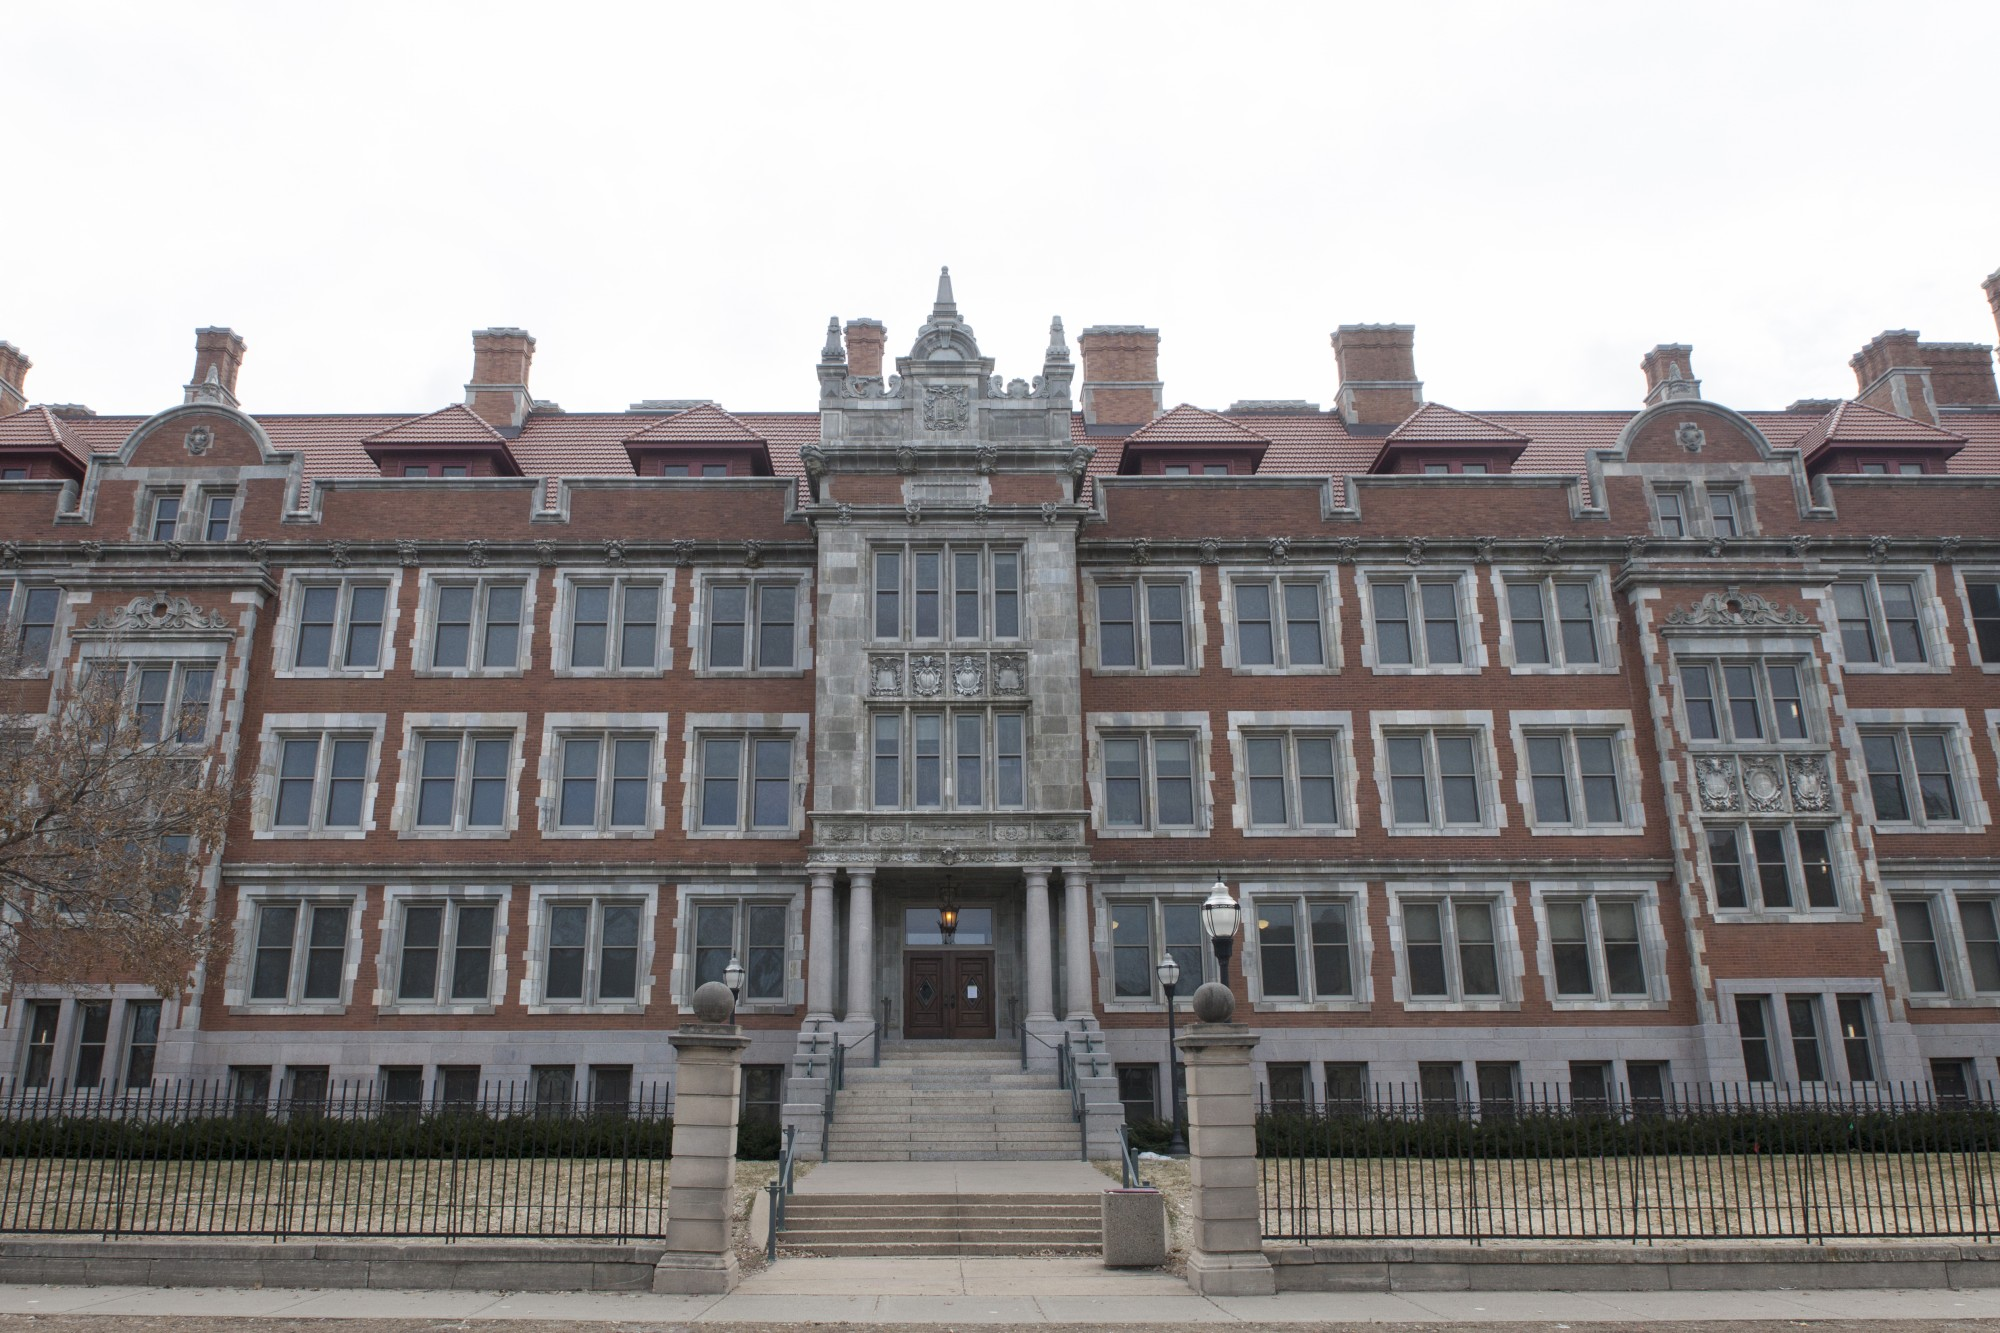 Folwell Hall on Saturday, March 21. 2020.